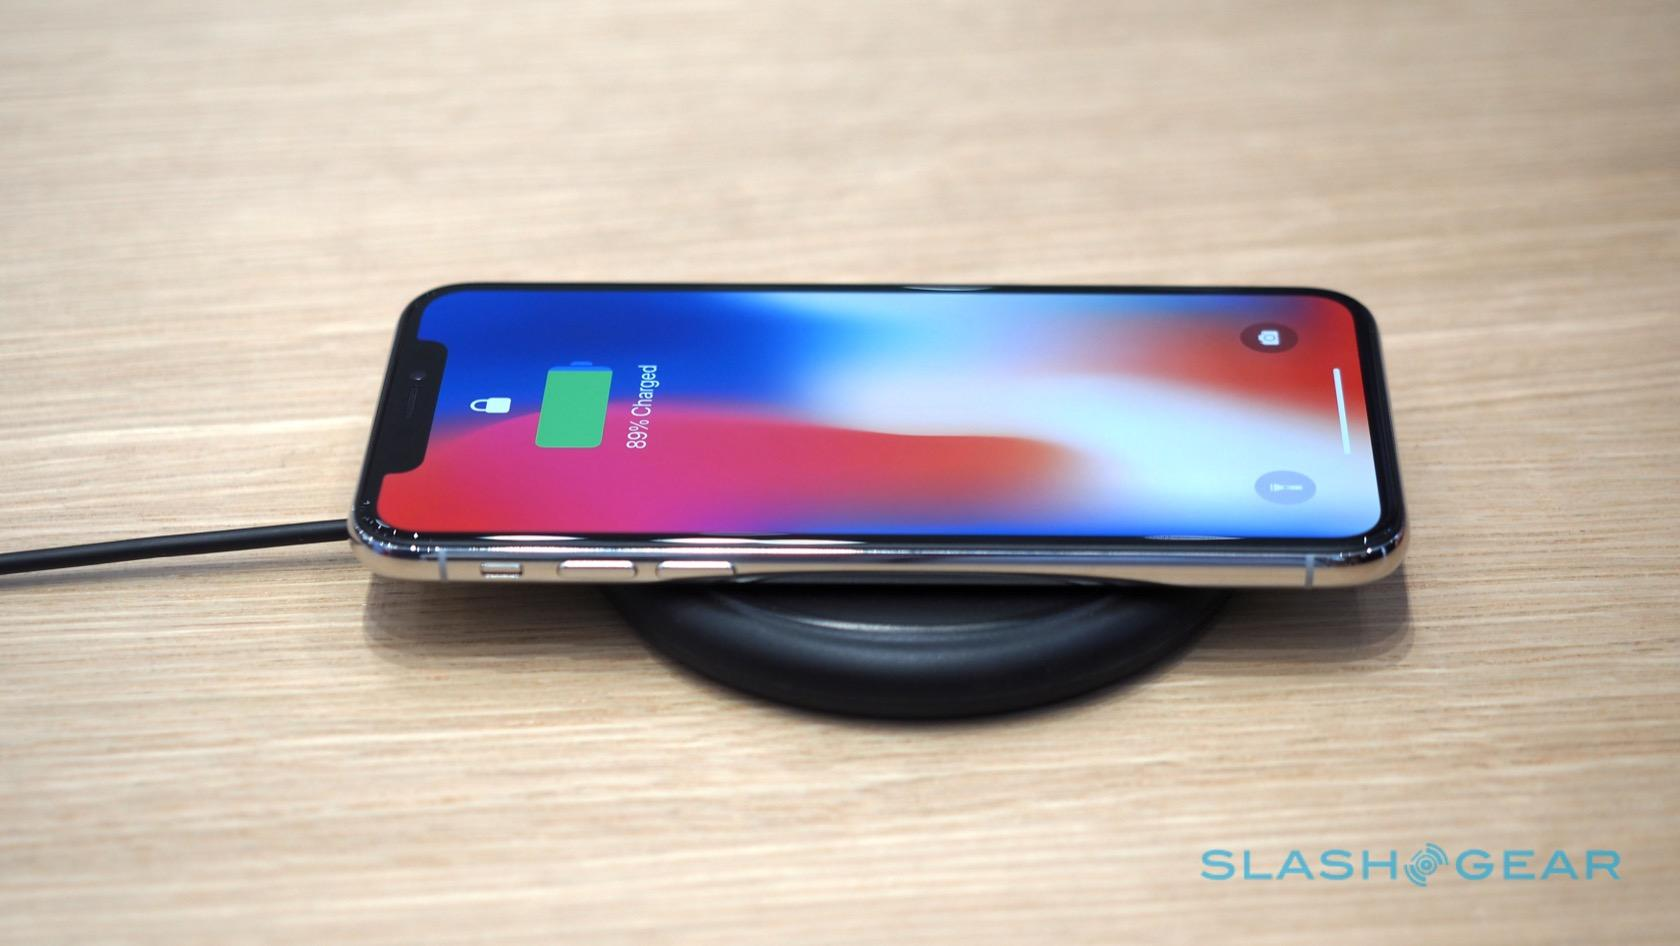 Wireless Charging Iphone Yes The Iphone X Supports Wireless Charging At Starbucks Slashgear